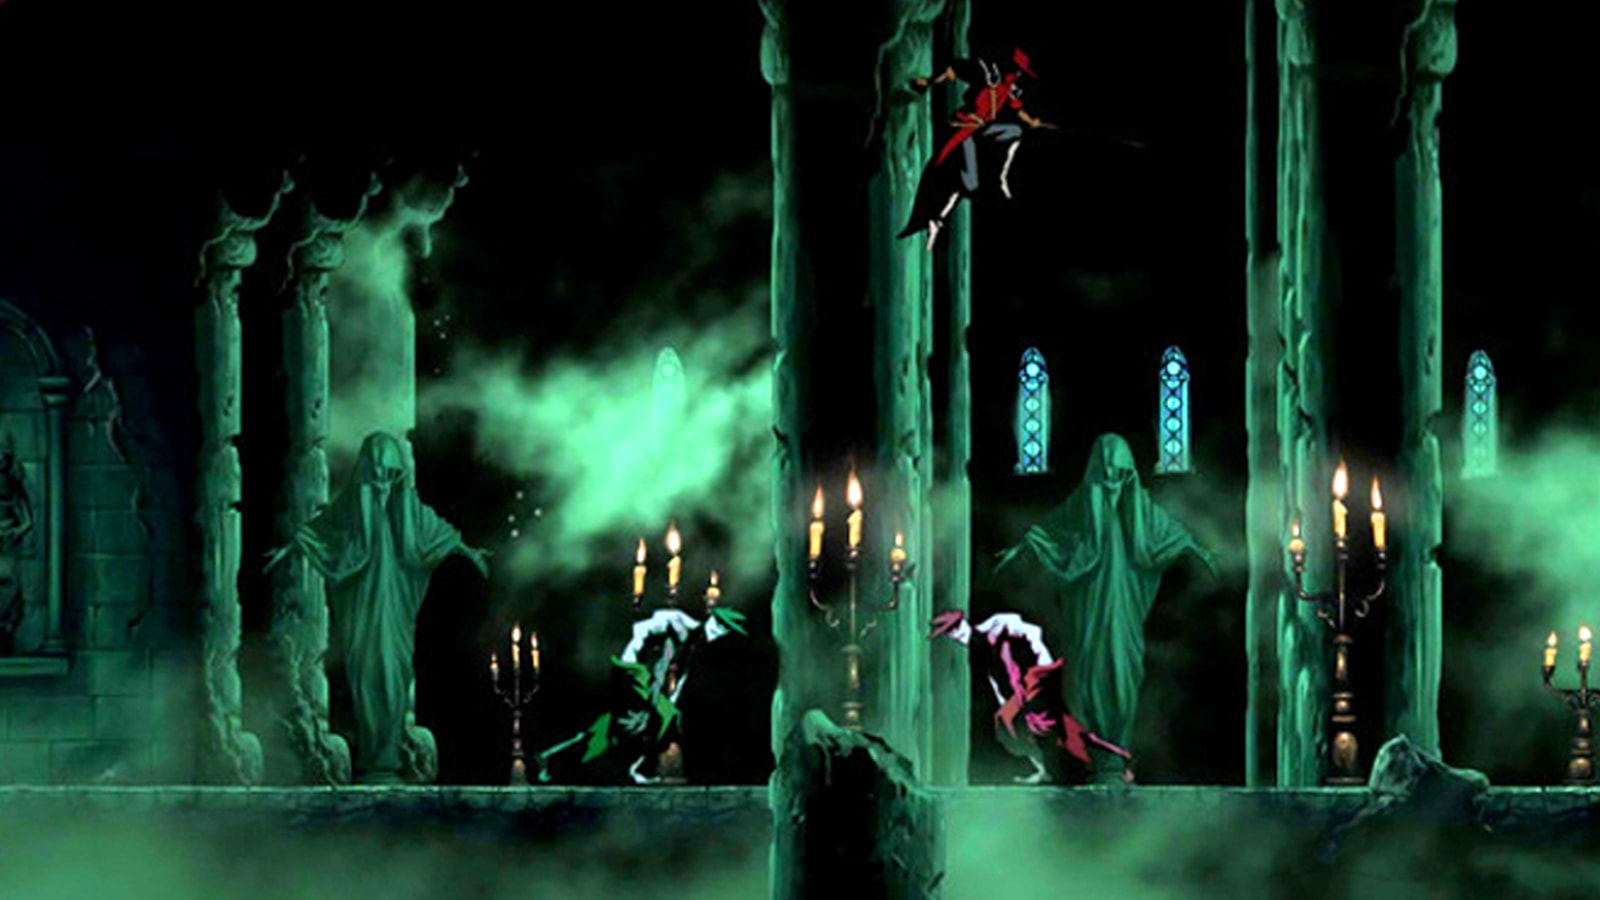 A swordsman in red leaps above two zombies in a decrepit church.